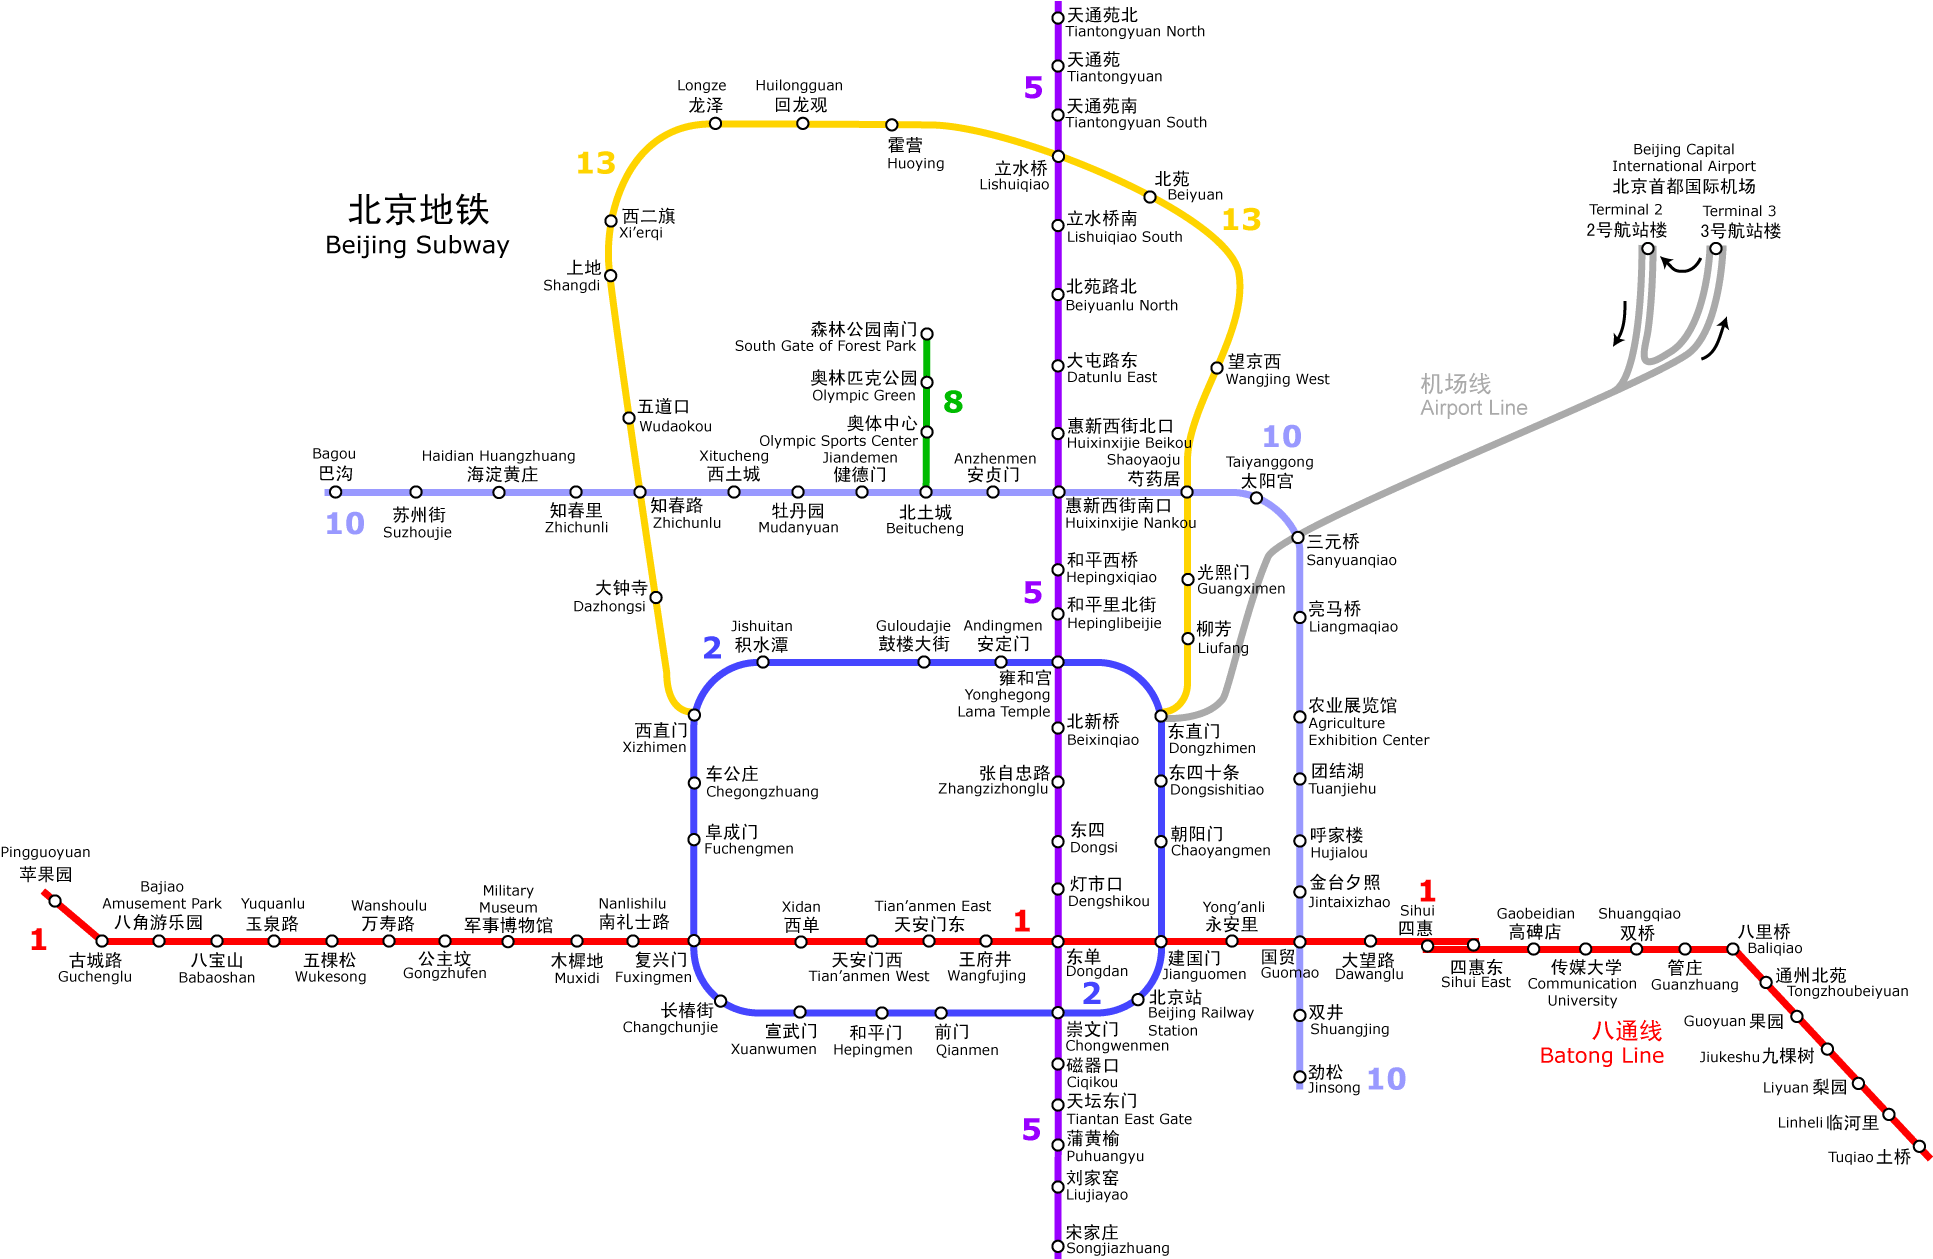 Picture of Obtain a Current Subway Map, and Find Your Location and Destination